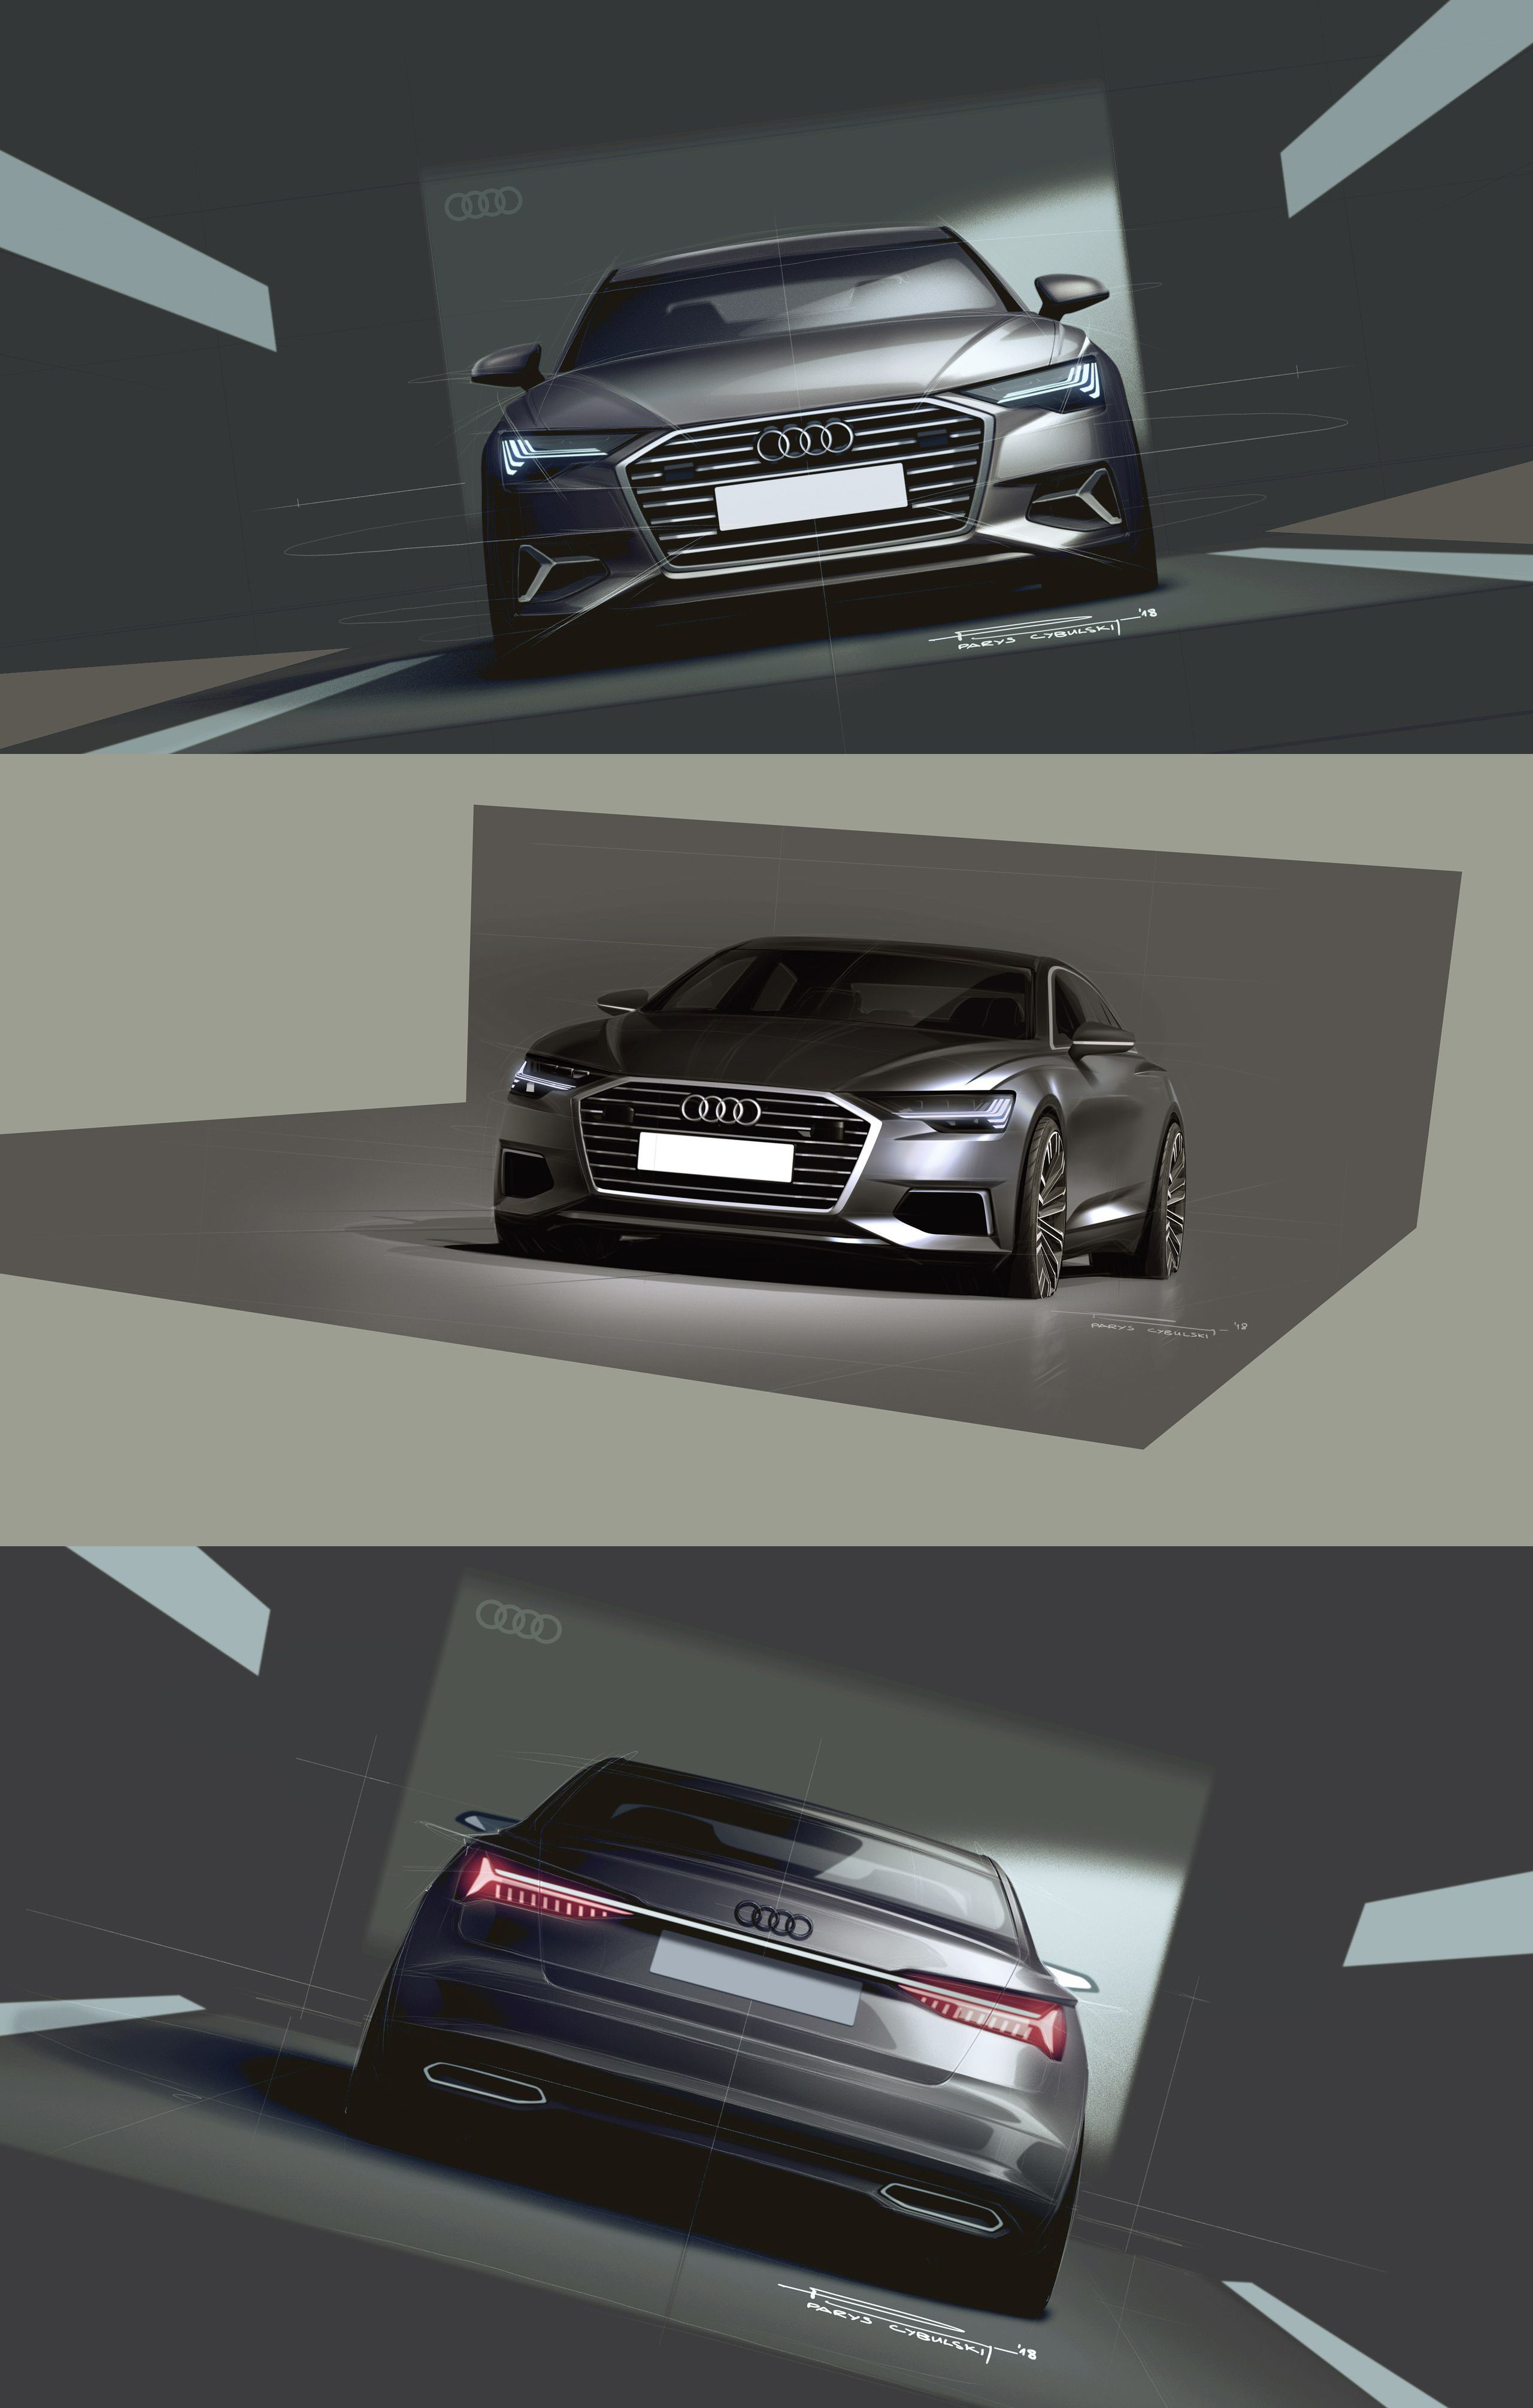 Pin by HWI MIN CHOI on sketch | Pinterest | Sketches, Cars and Car ...